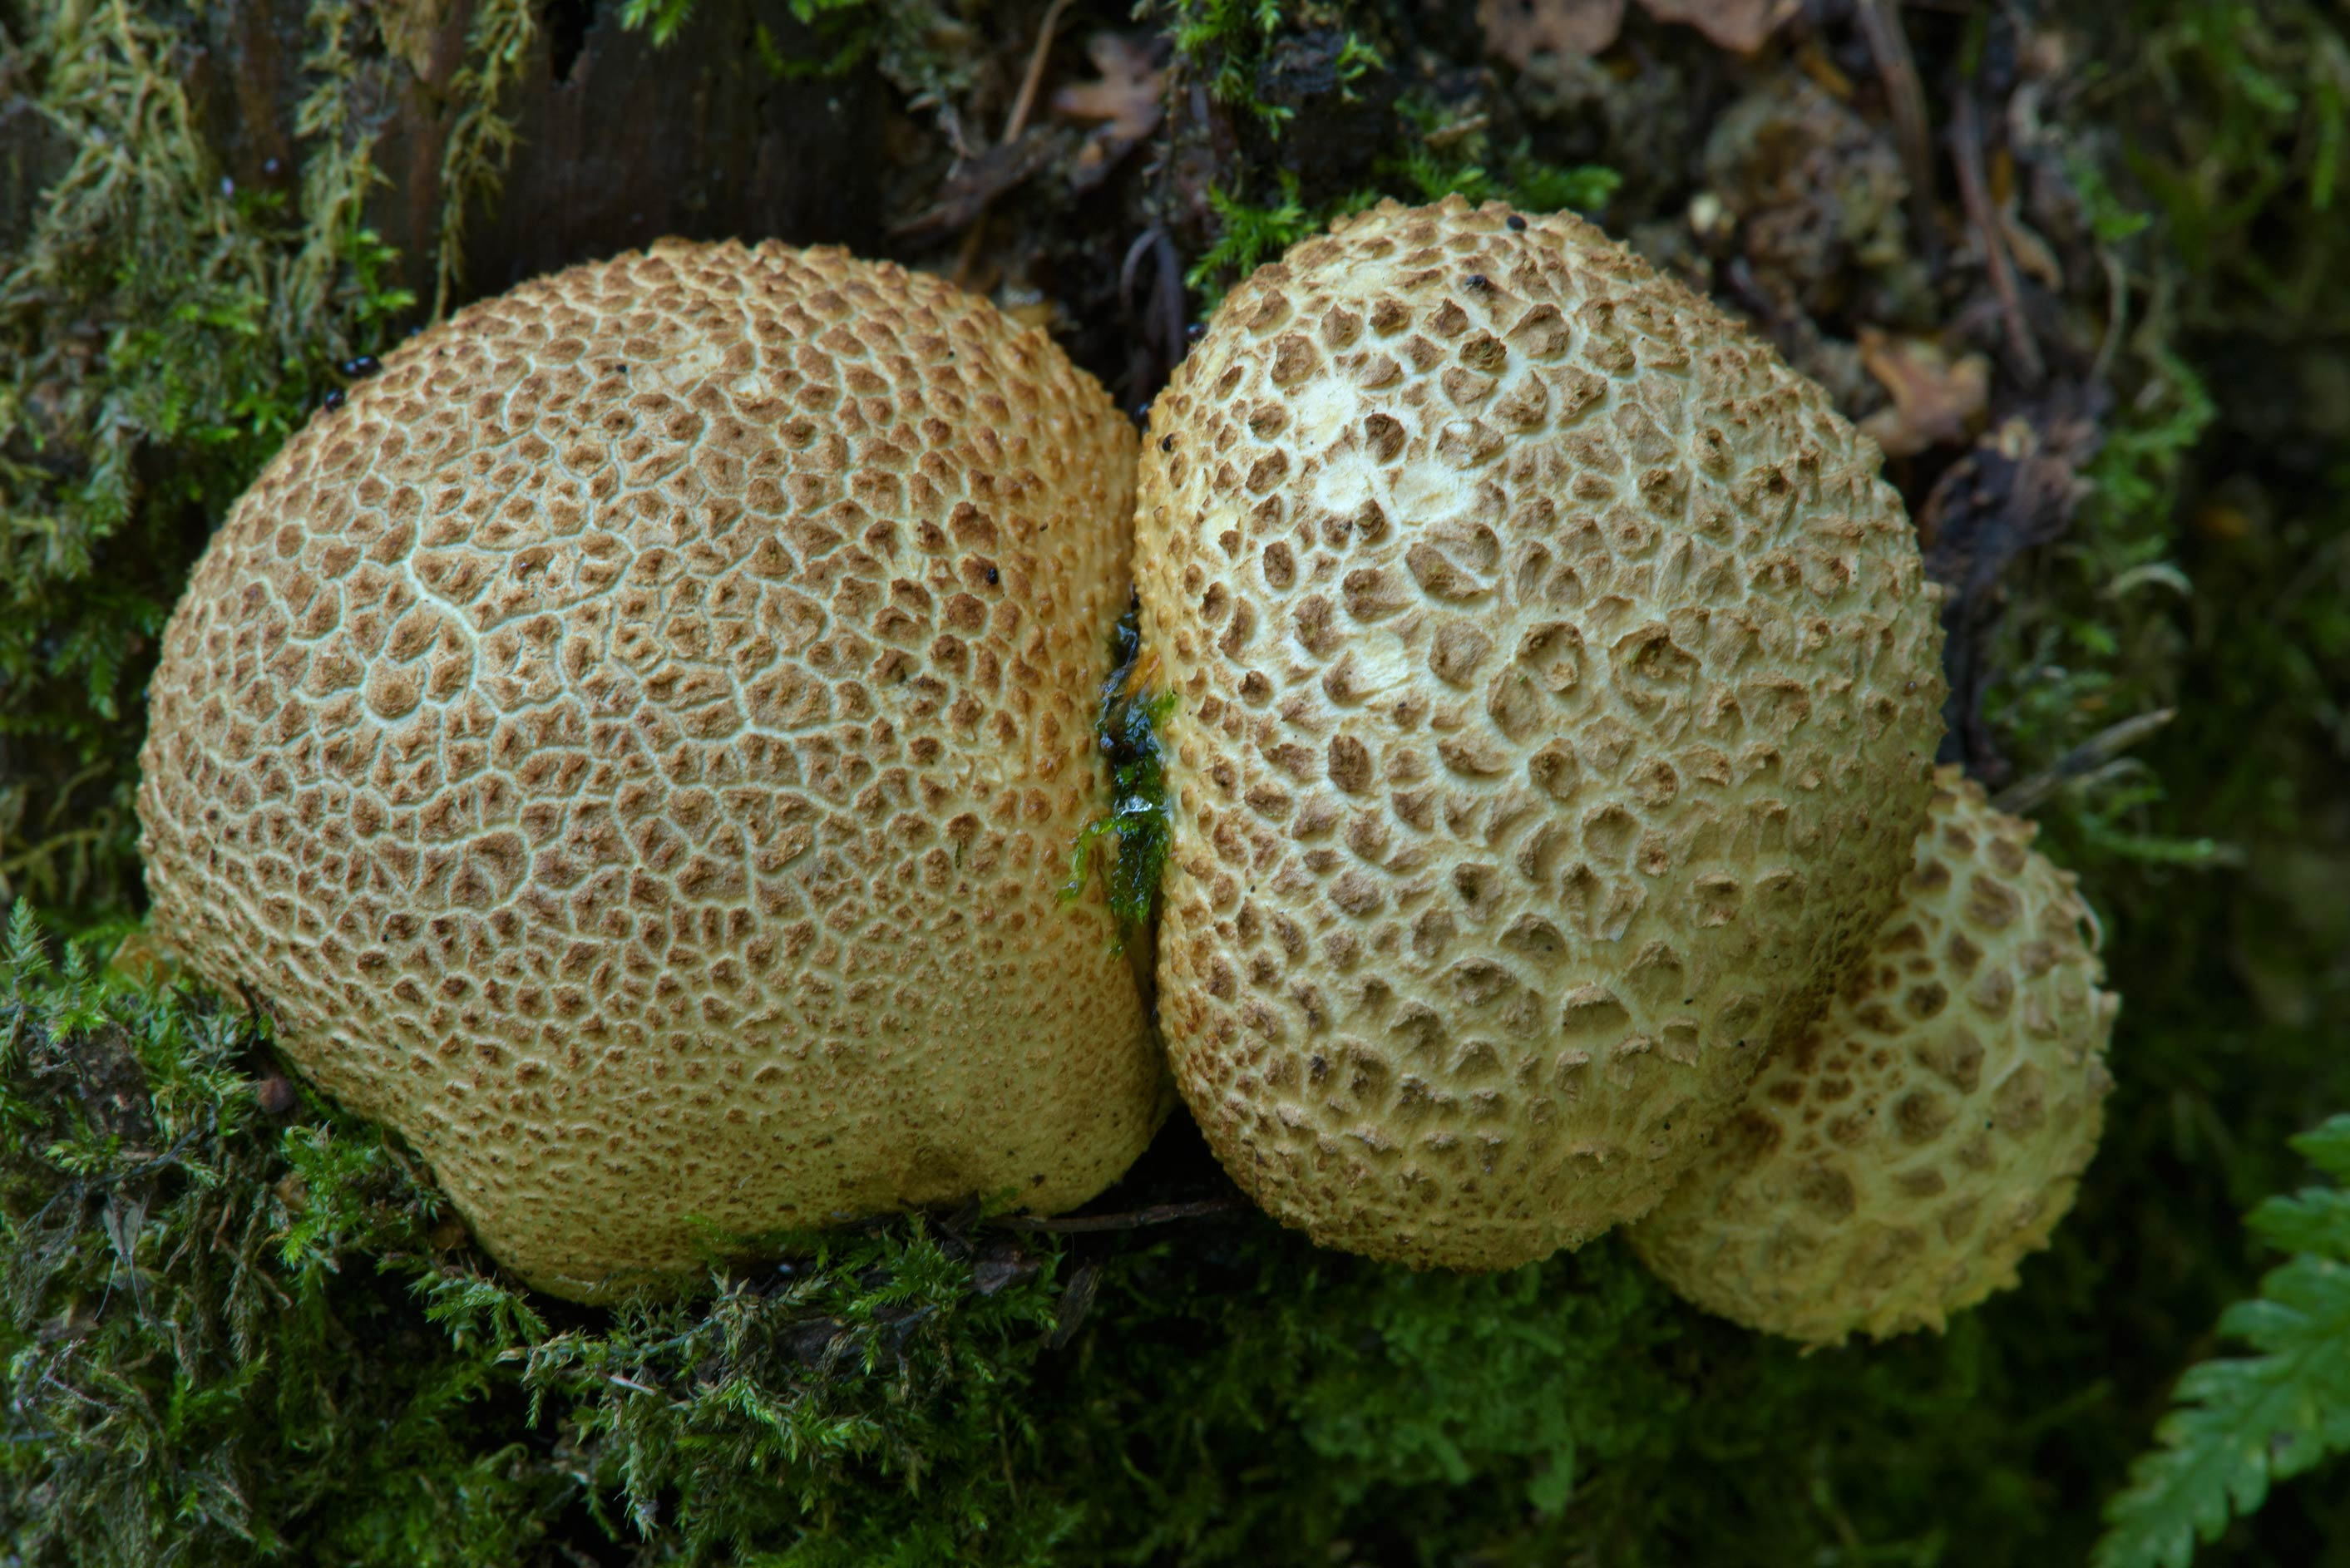 Earthball mushrooms (Scleroderma citrinum) in Sosnovka Park. St.Petersburg, Russia